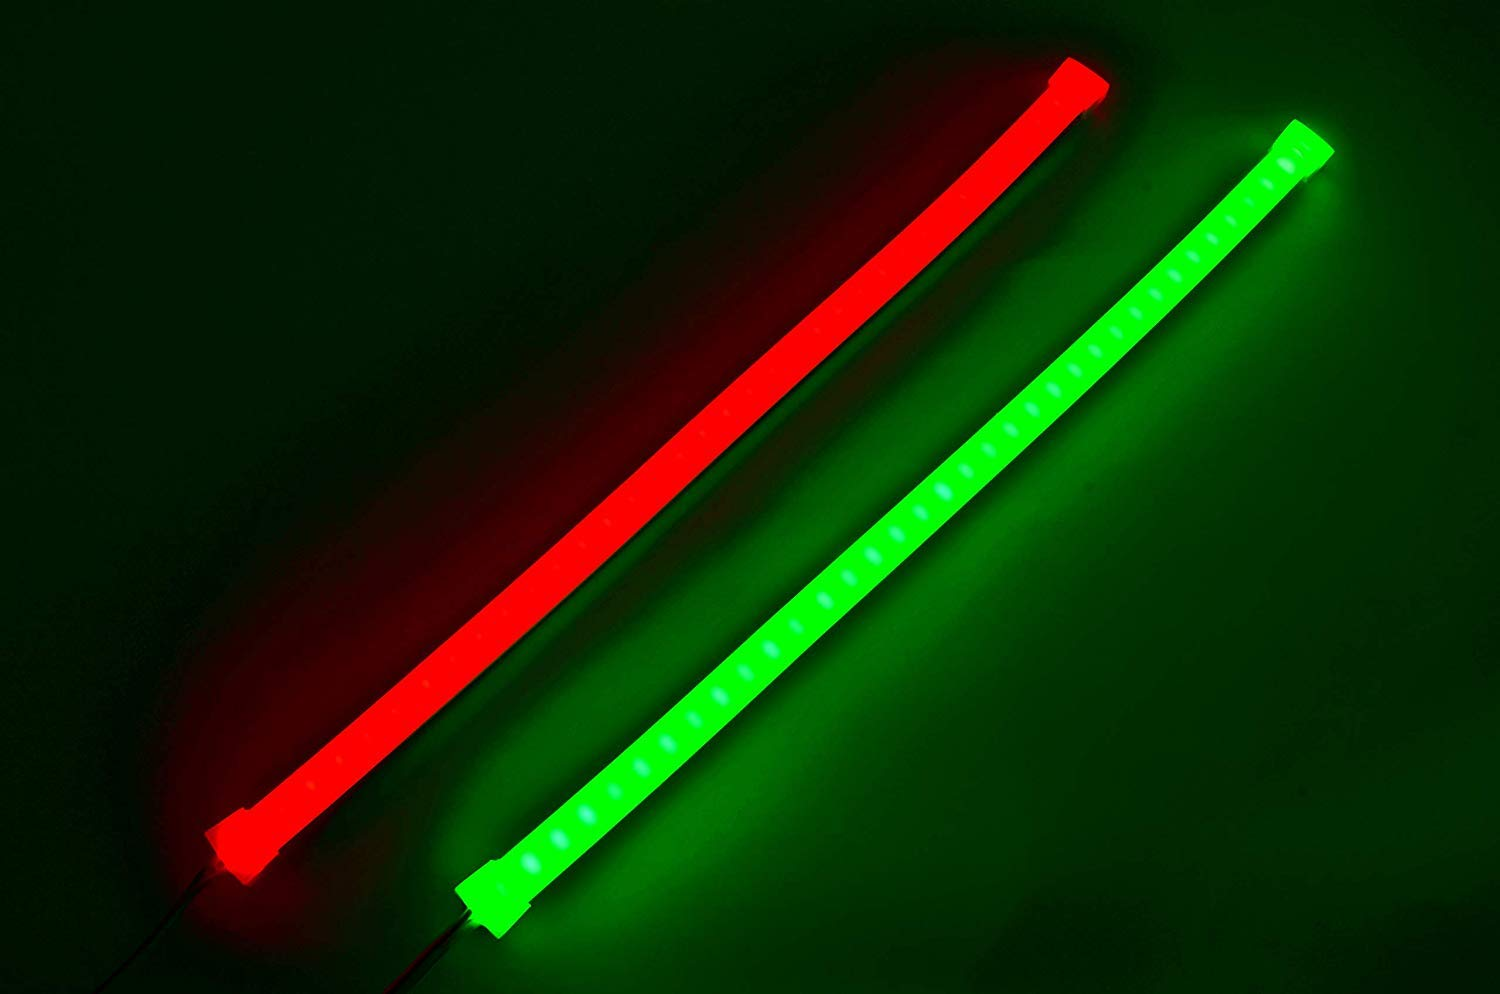 Pimp My Boat Neon Navs, Premium Red & Green Neon Navigation Boat LED Light  Strip Kit IP68 Waterproof for Bass Boats, Pontoons, Wave Runners, Kayaks,